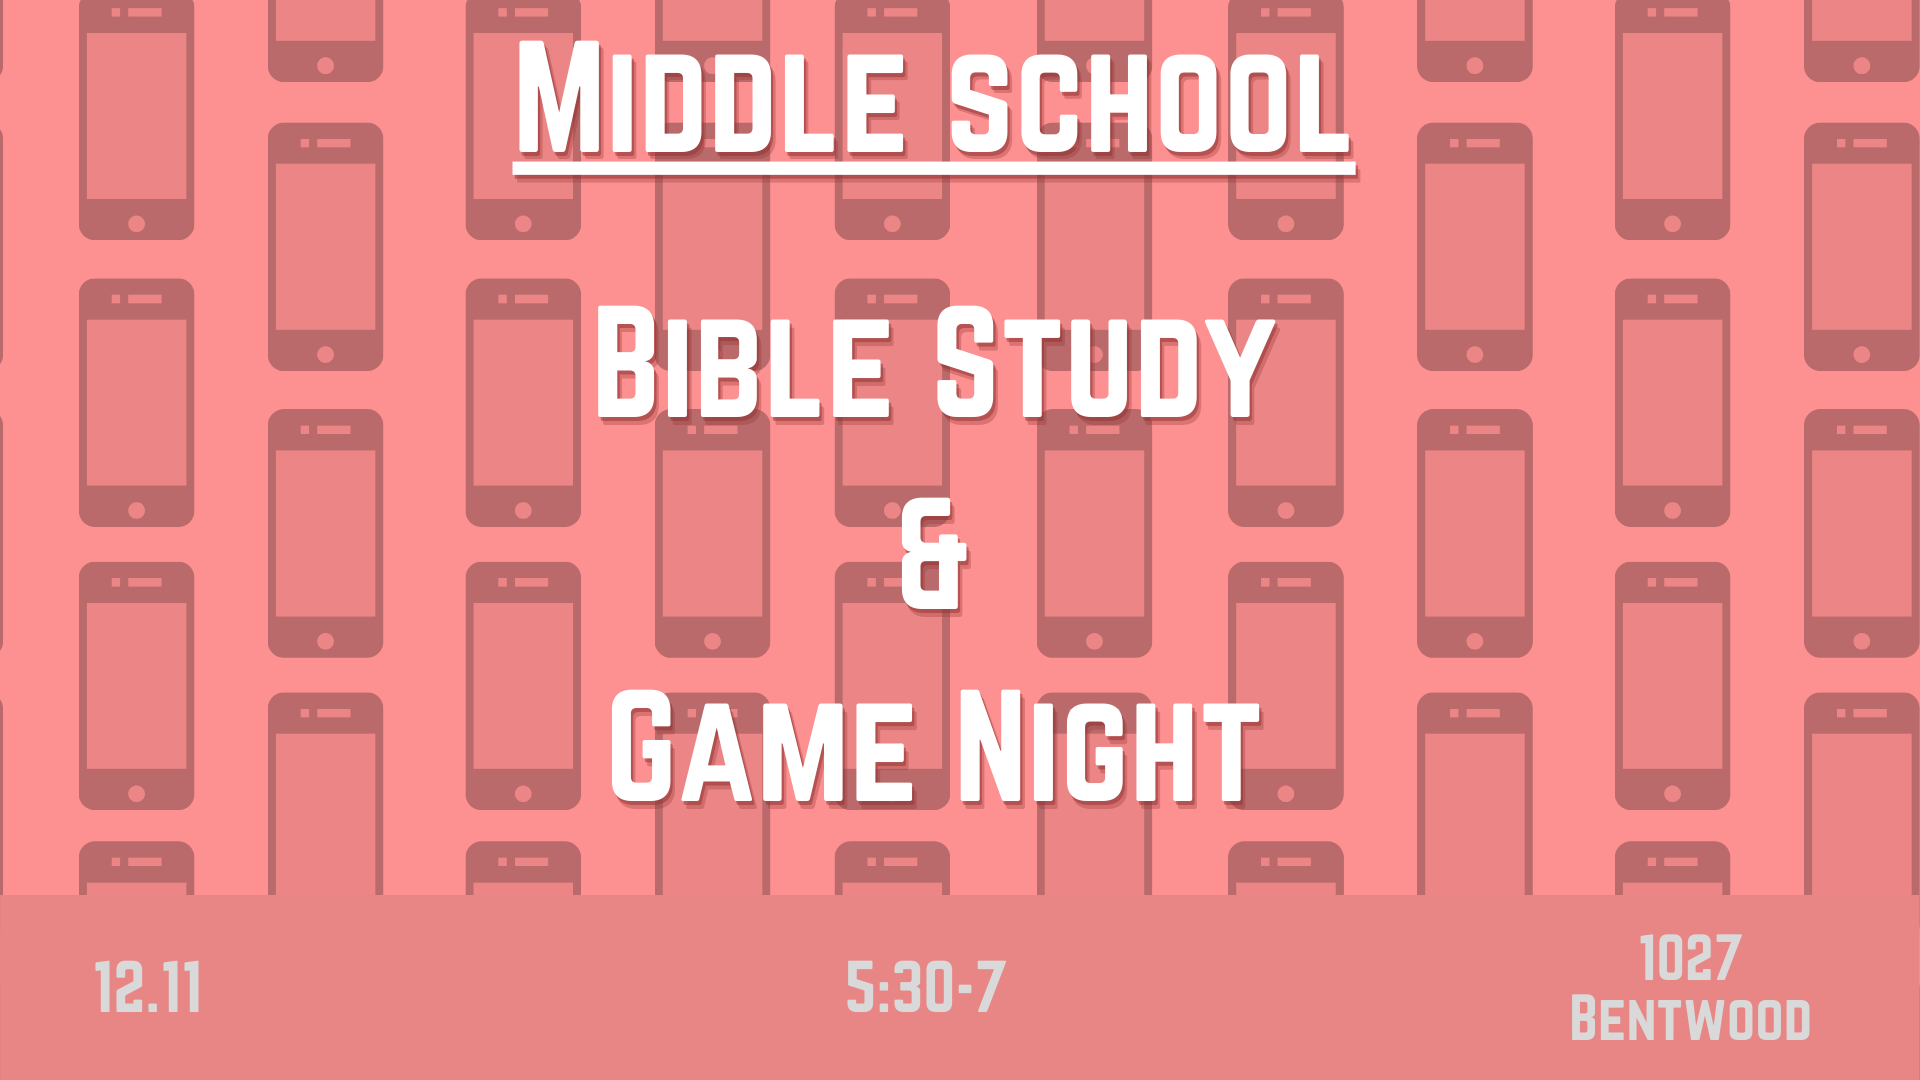 Copy of Middle school Bible Study & Game Night